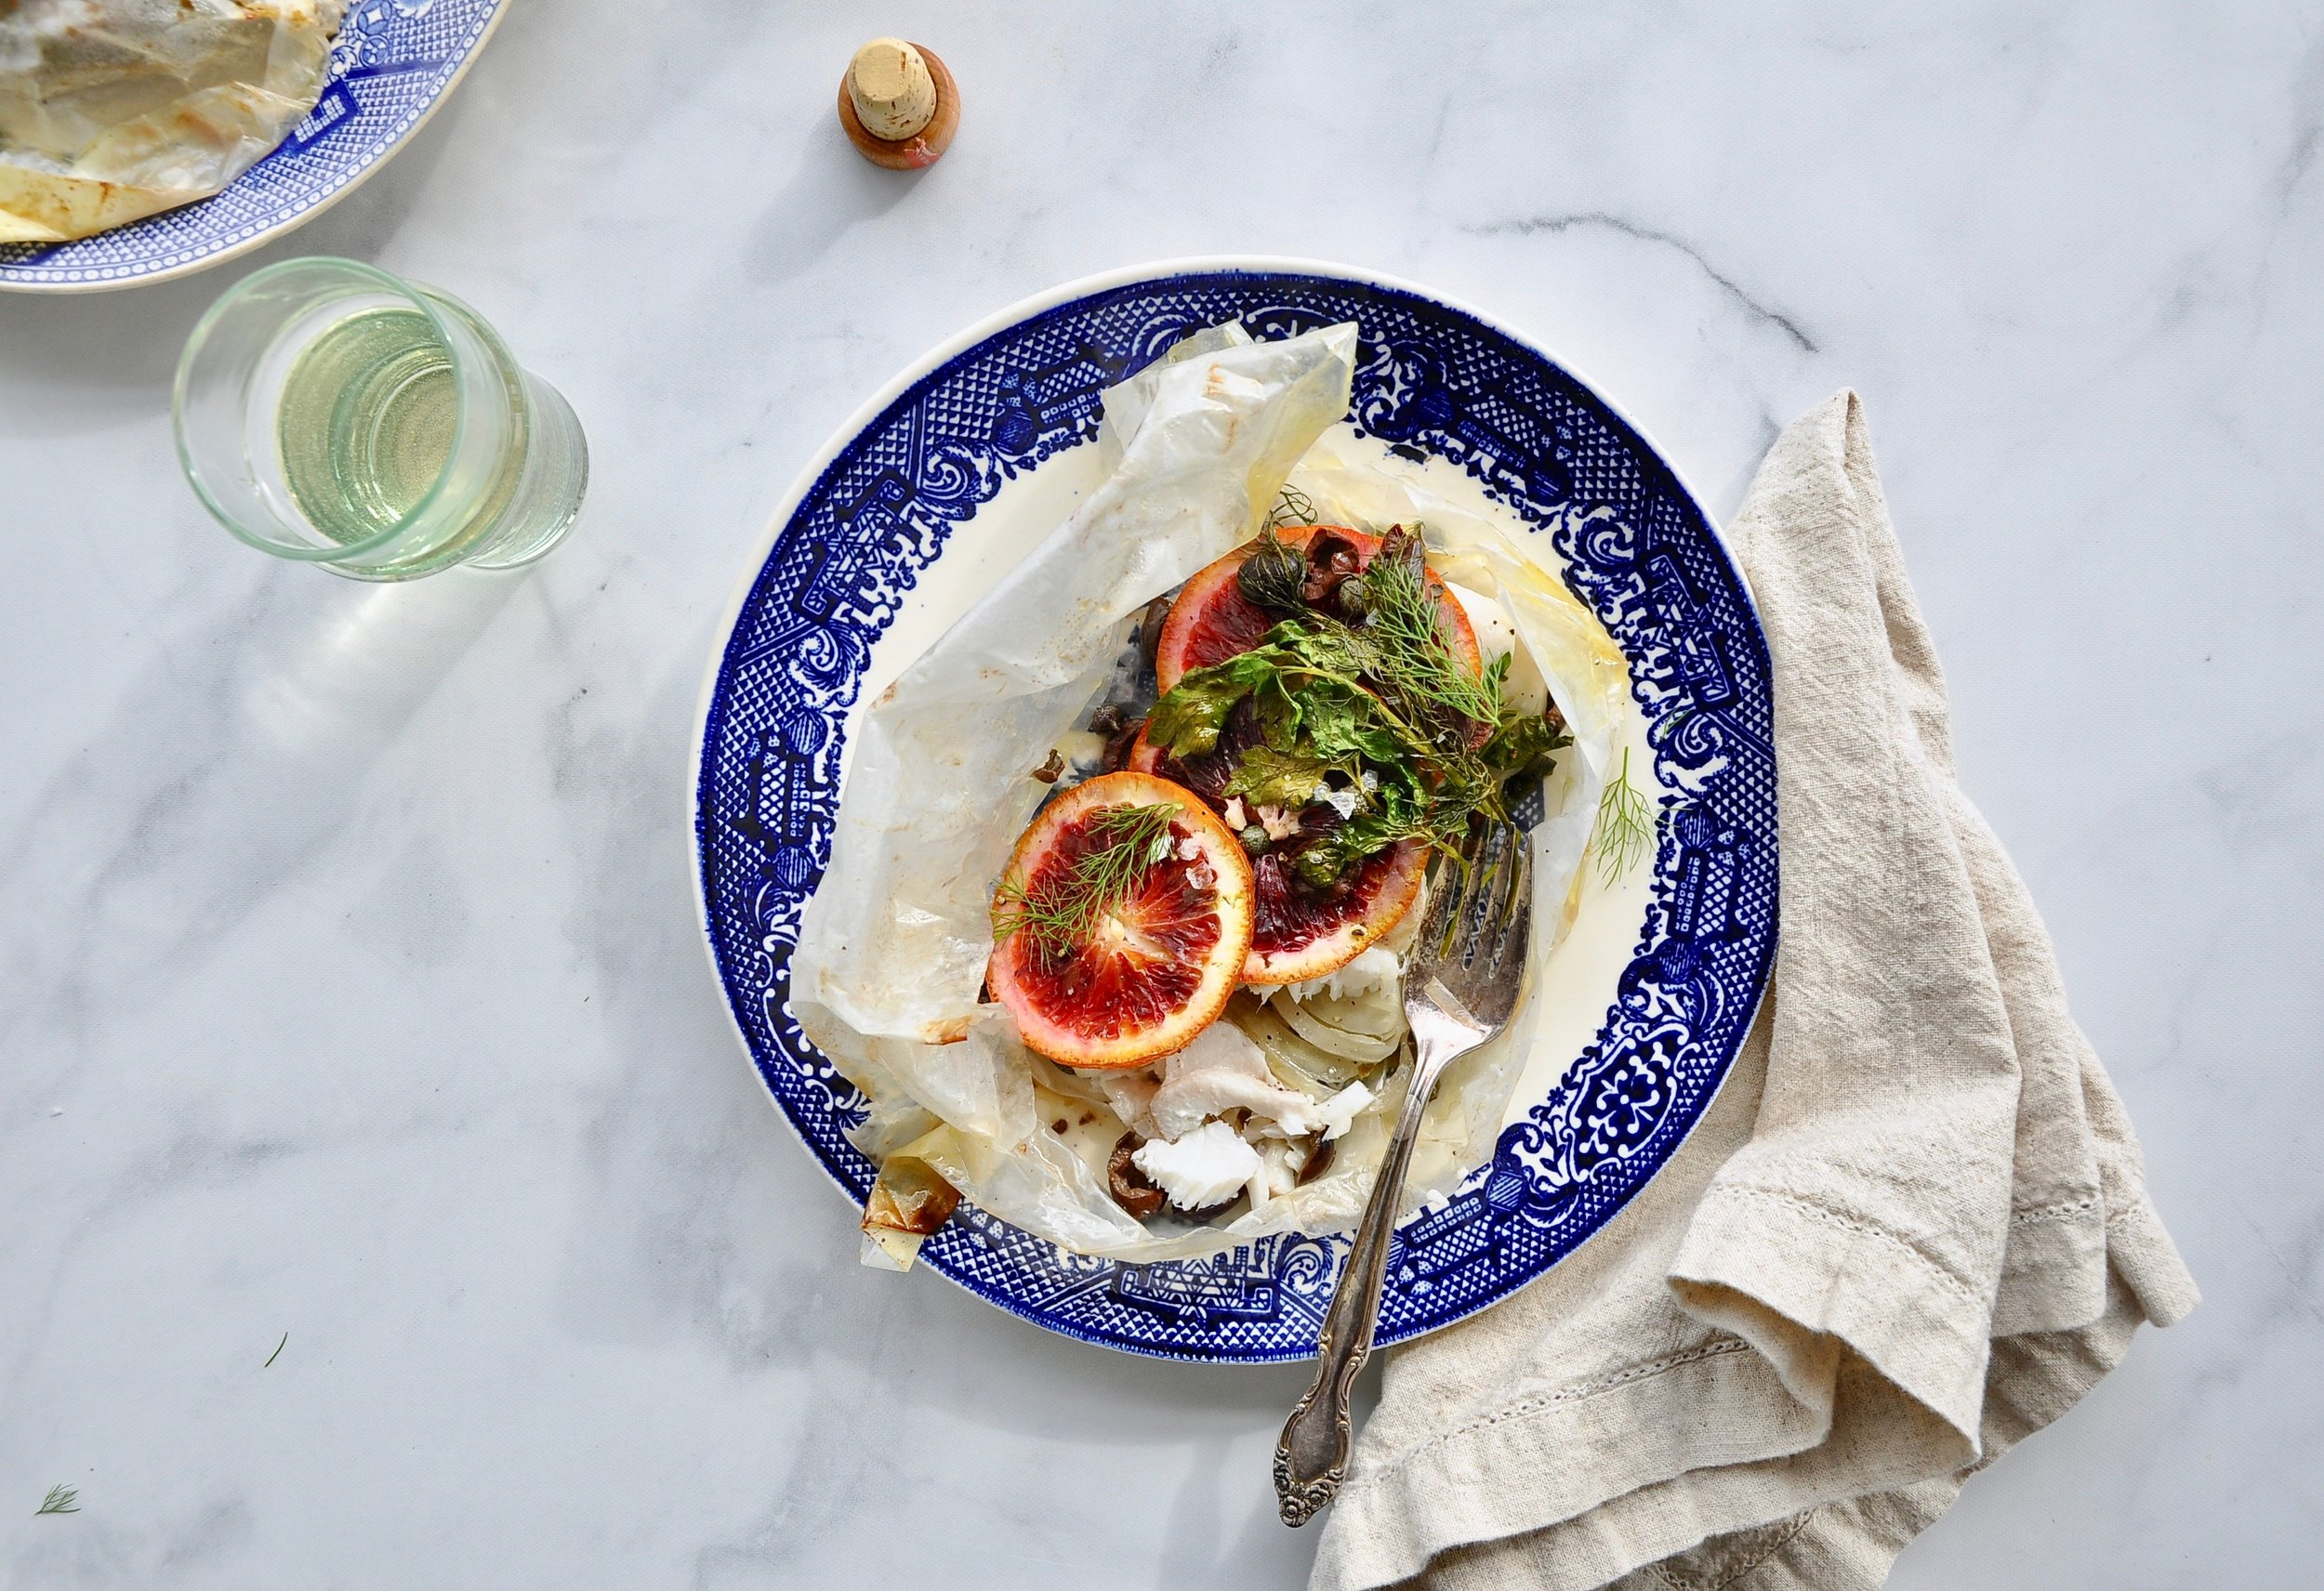 COD EN PAPILLOTE WITH BLOOD ORANGE AND FENNEL  Private Consulting Client